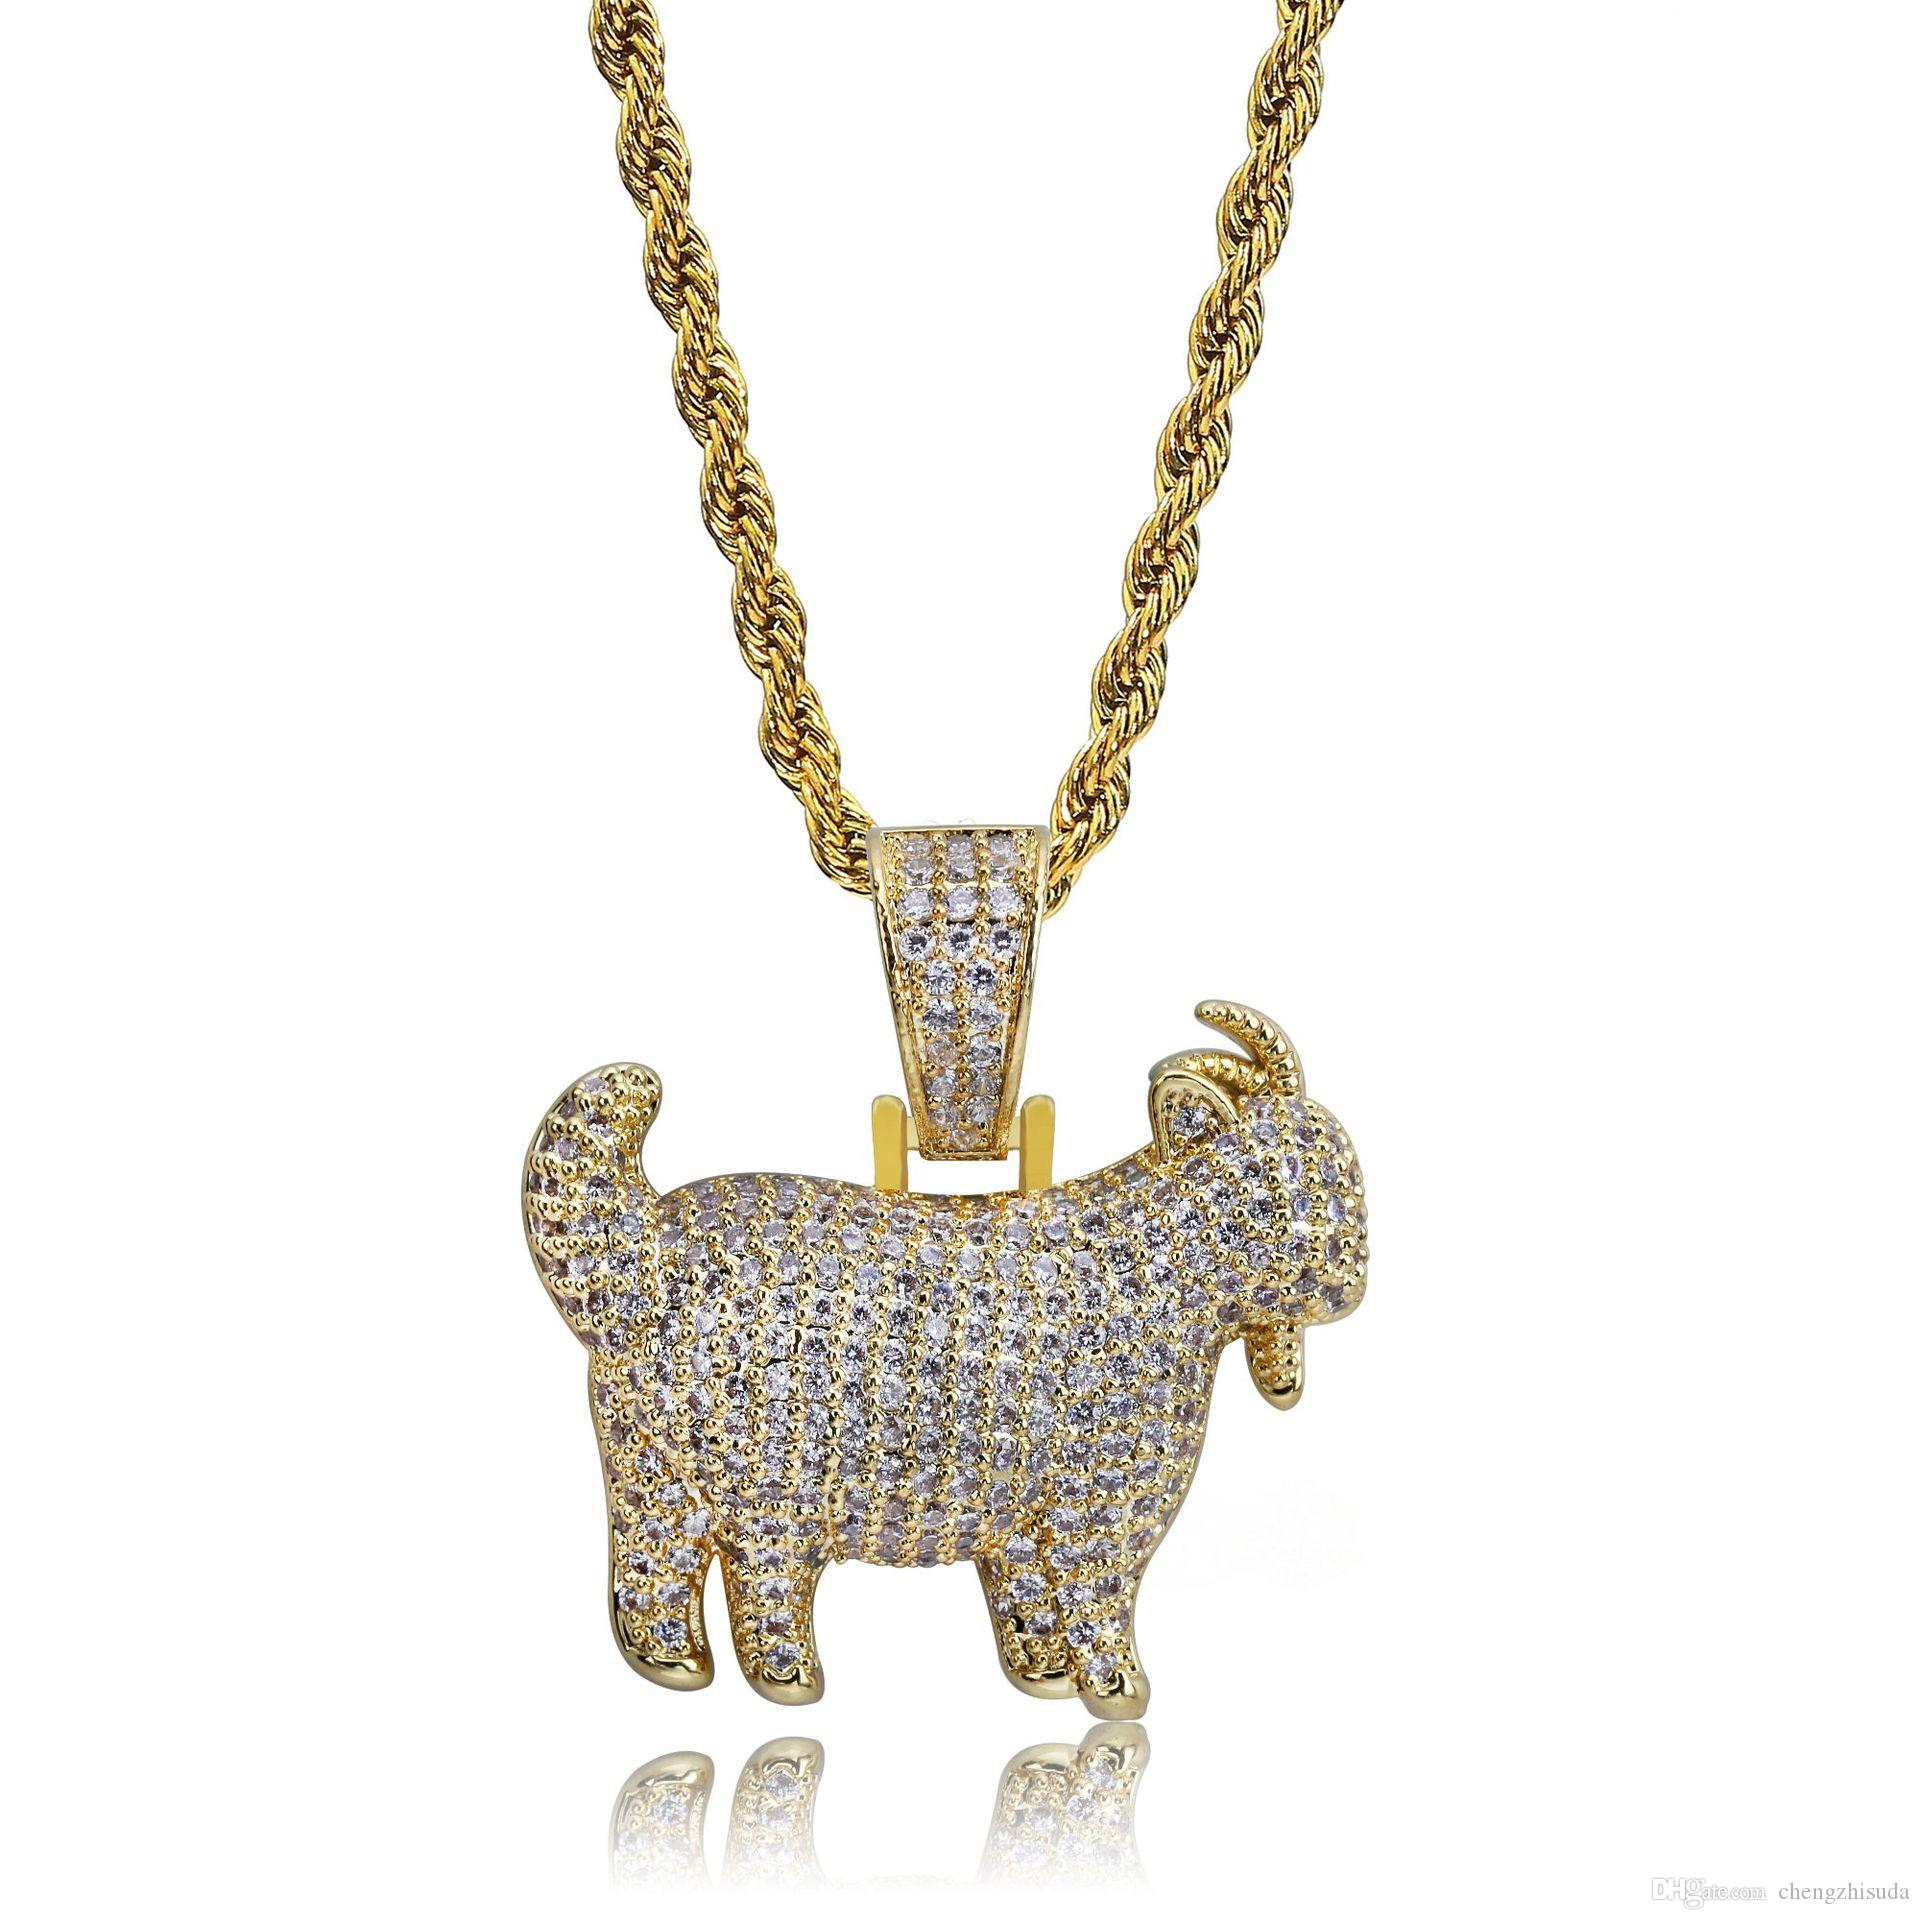 Shiny Trendy Goat Animal Pendant Necklace Charms For Men Women Gold Silver Color Cubic Zircon Hip Hop Jewelry